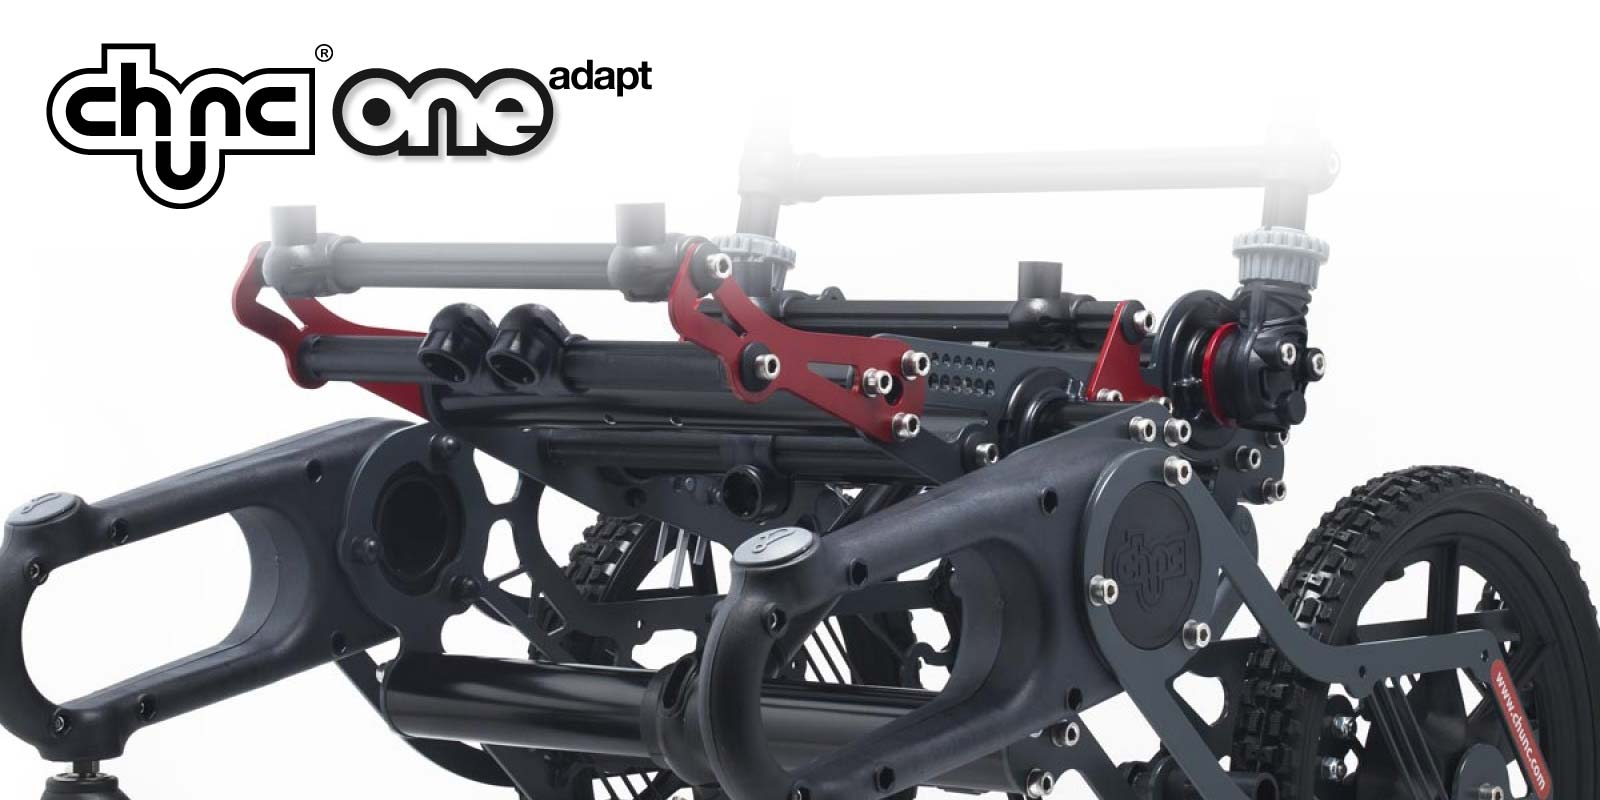 chunc one adapt product image